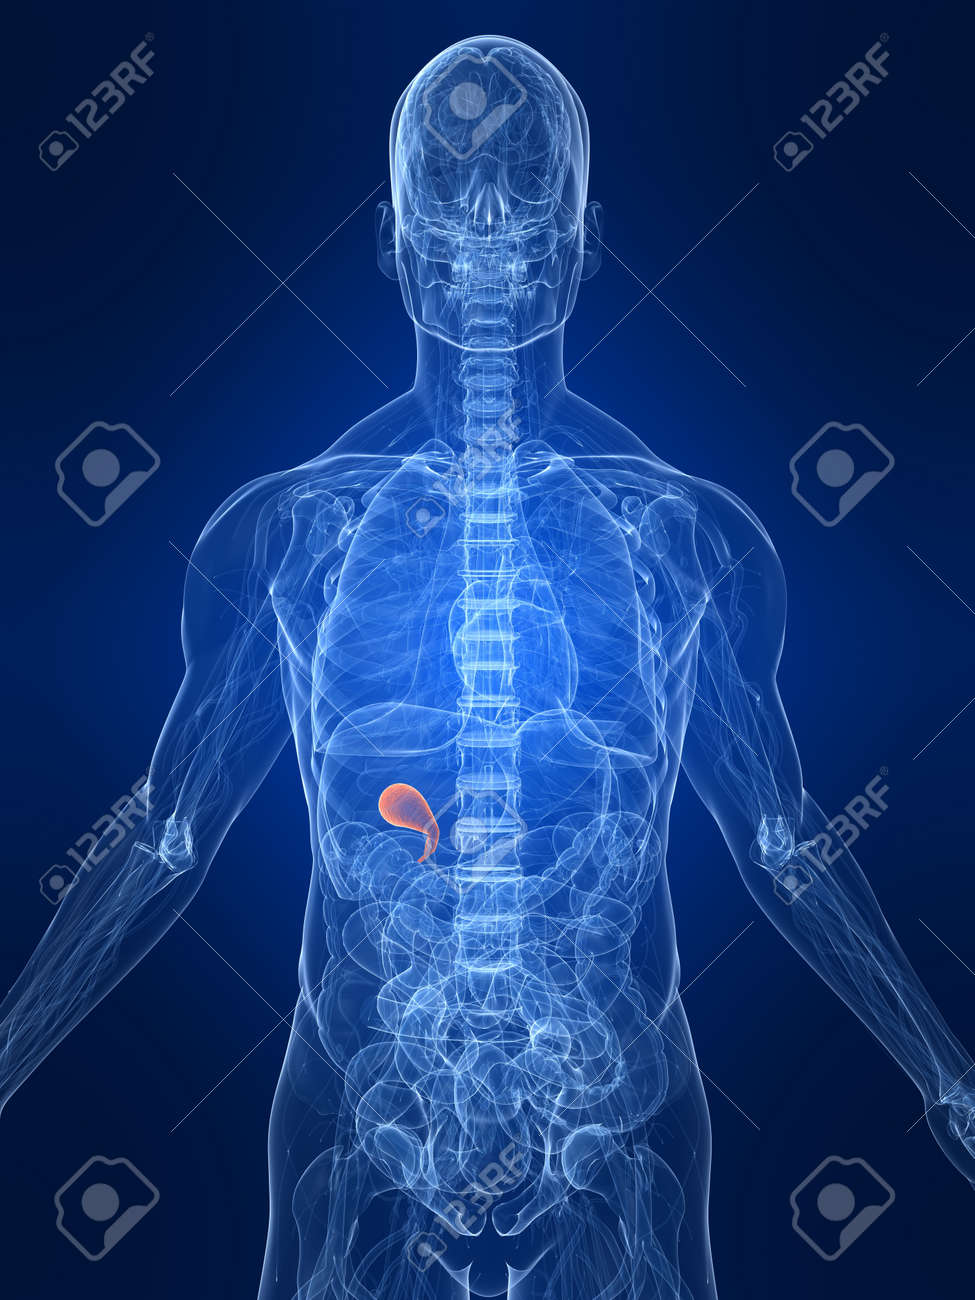 higlighted gall bladder Stock Photo - 4683155